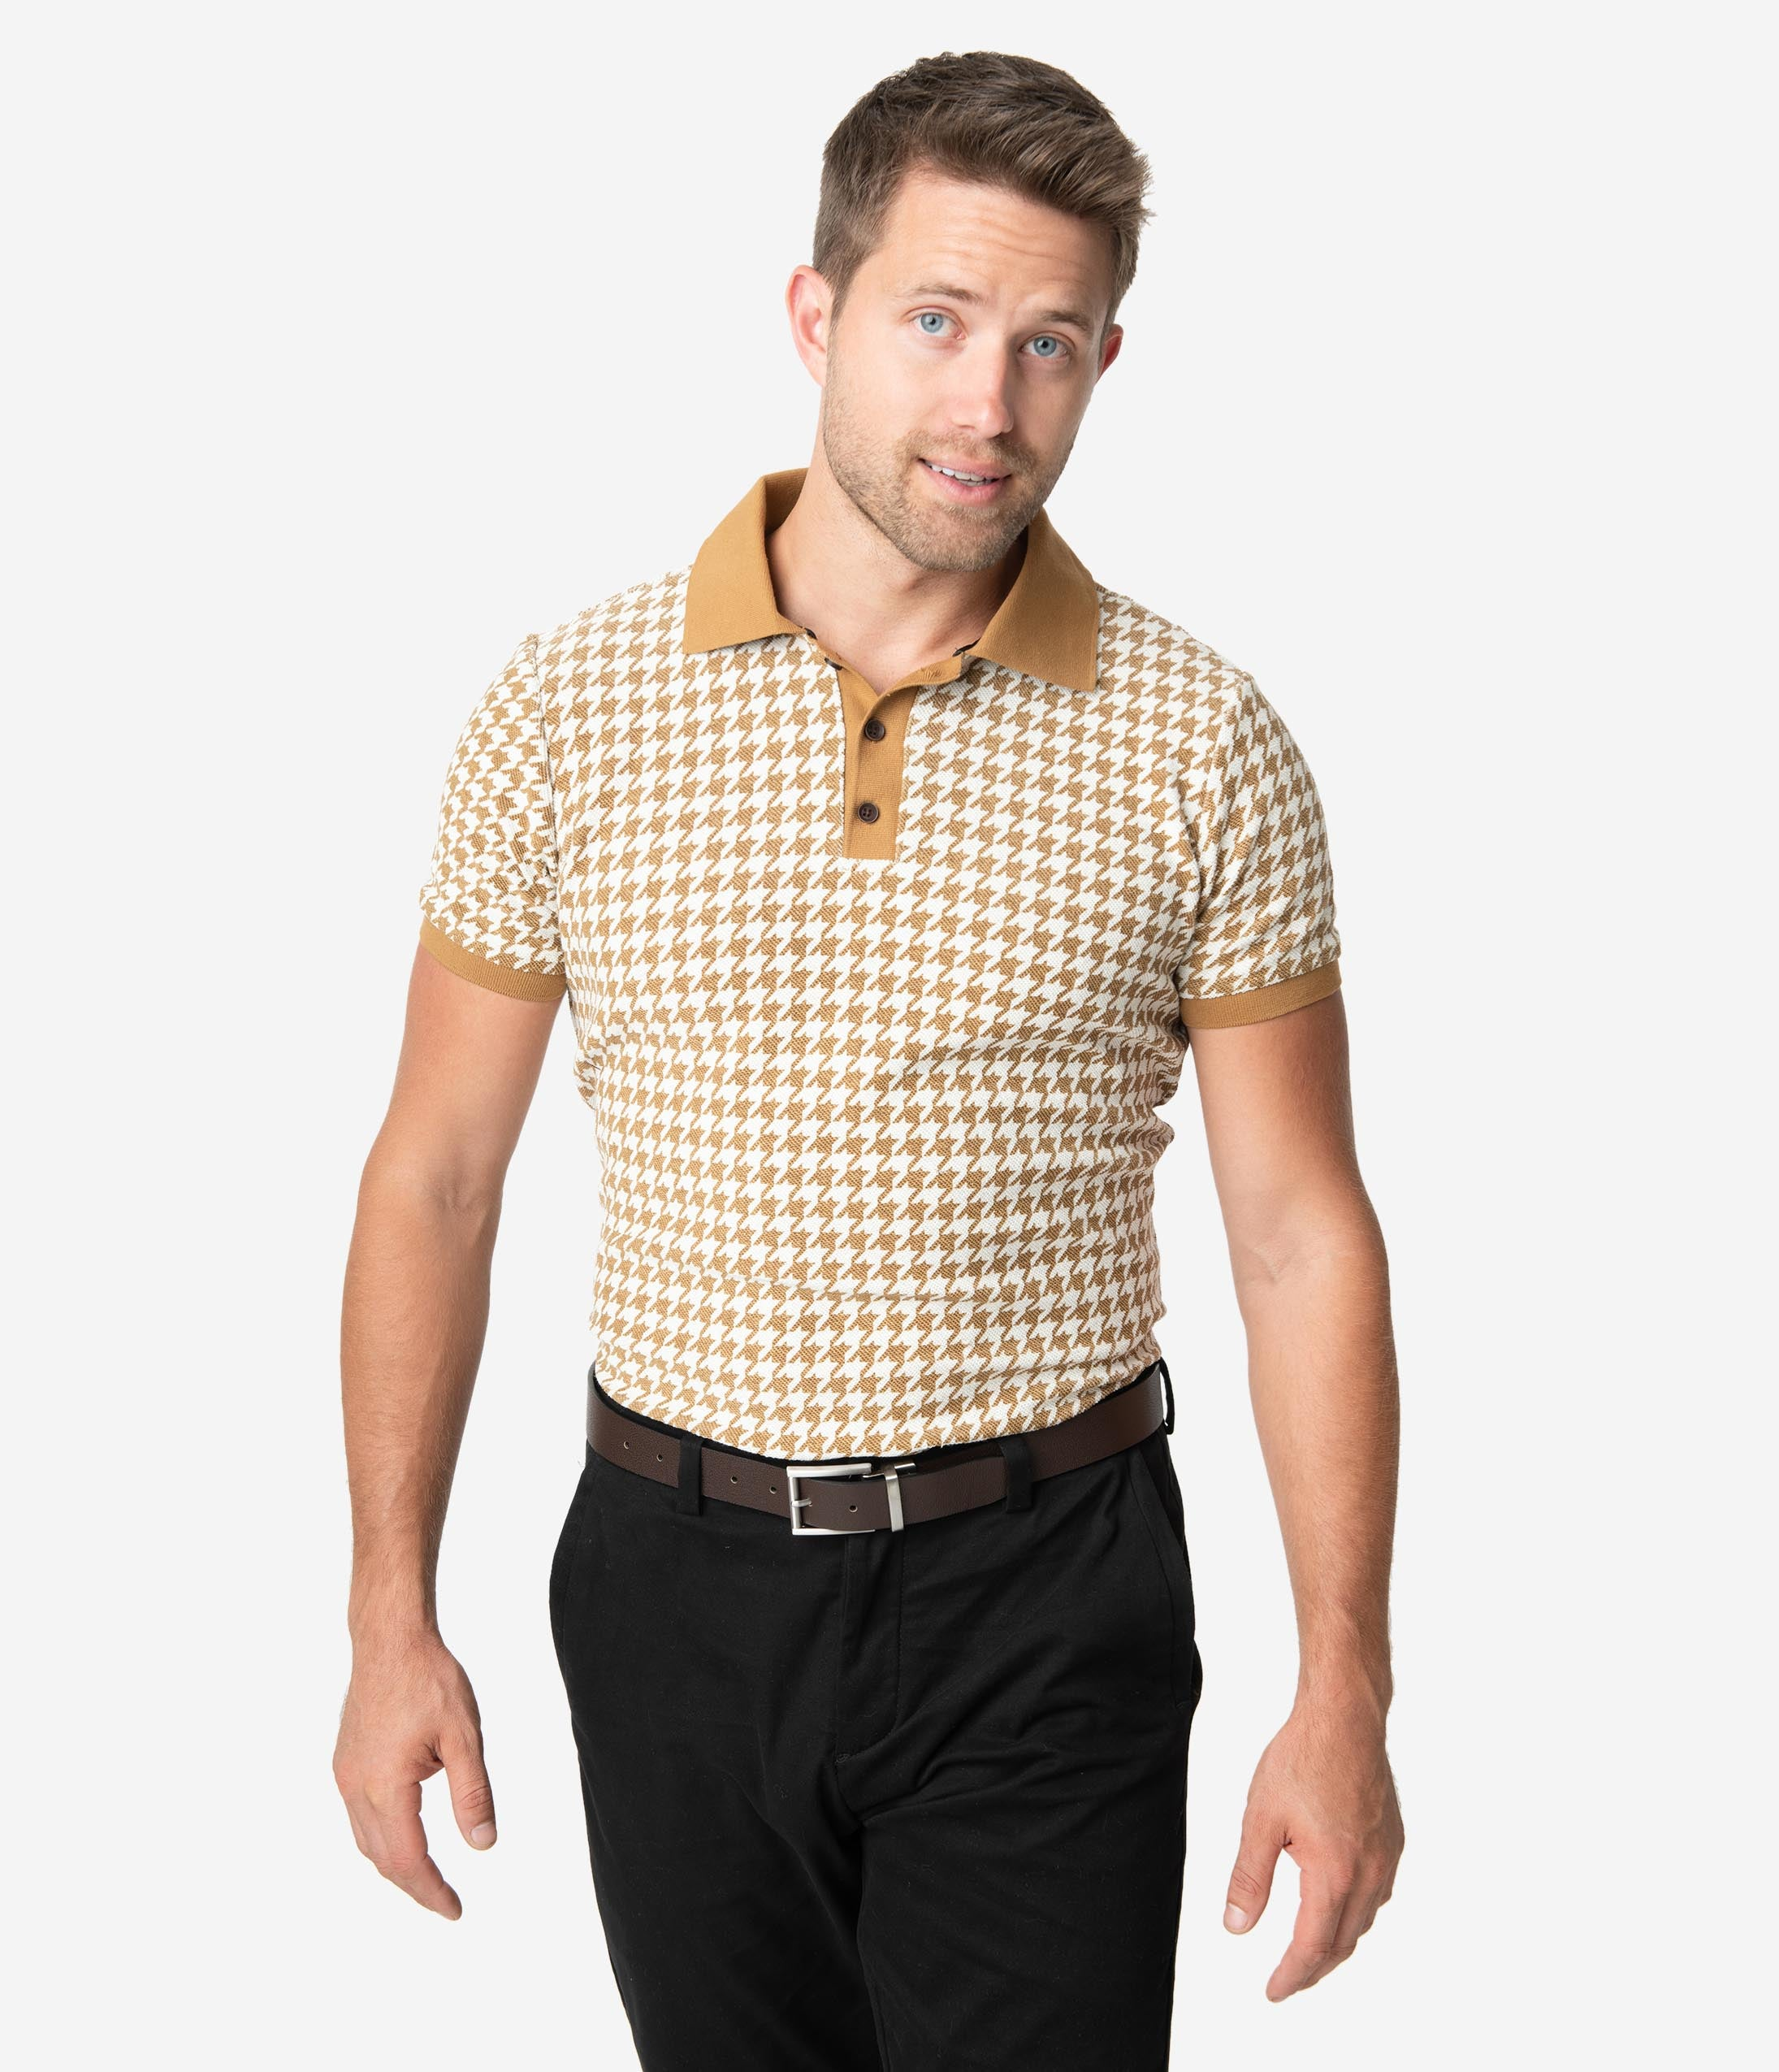 1950s Men's Clothing Collectif 1960S Mustard Houndstooth Short Sleeve Pablo Mens Polo Shirt $48.00 AT vintagedancer.com